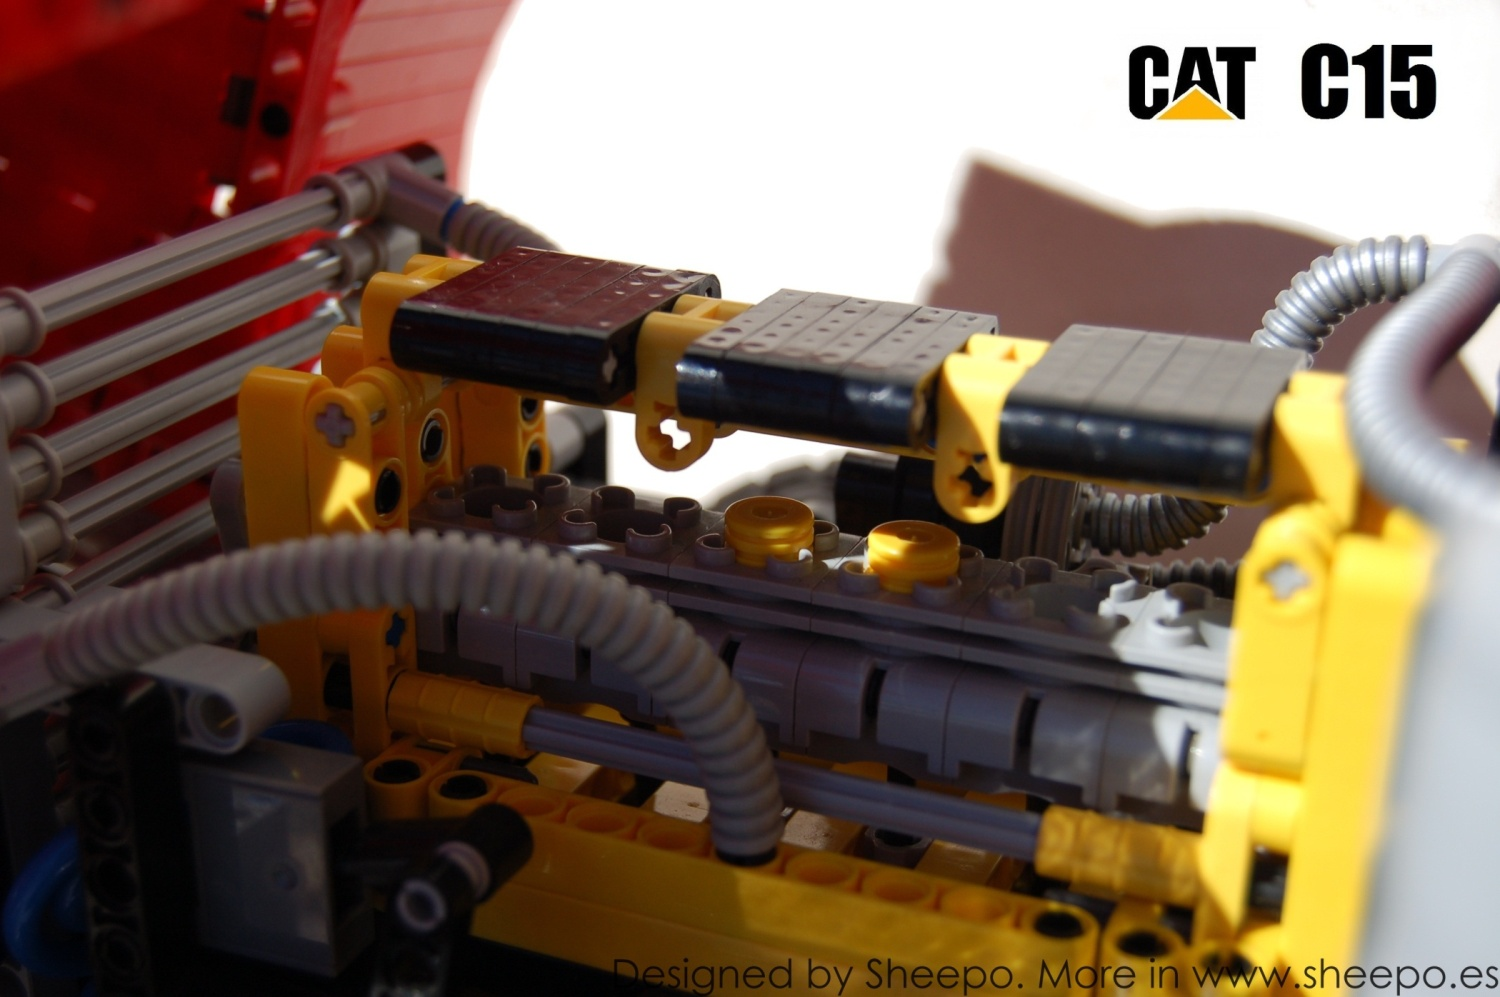 Peterbilt 379 Cat C15 A Lego Creation By Sheepo 39 S